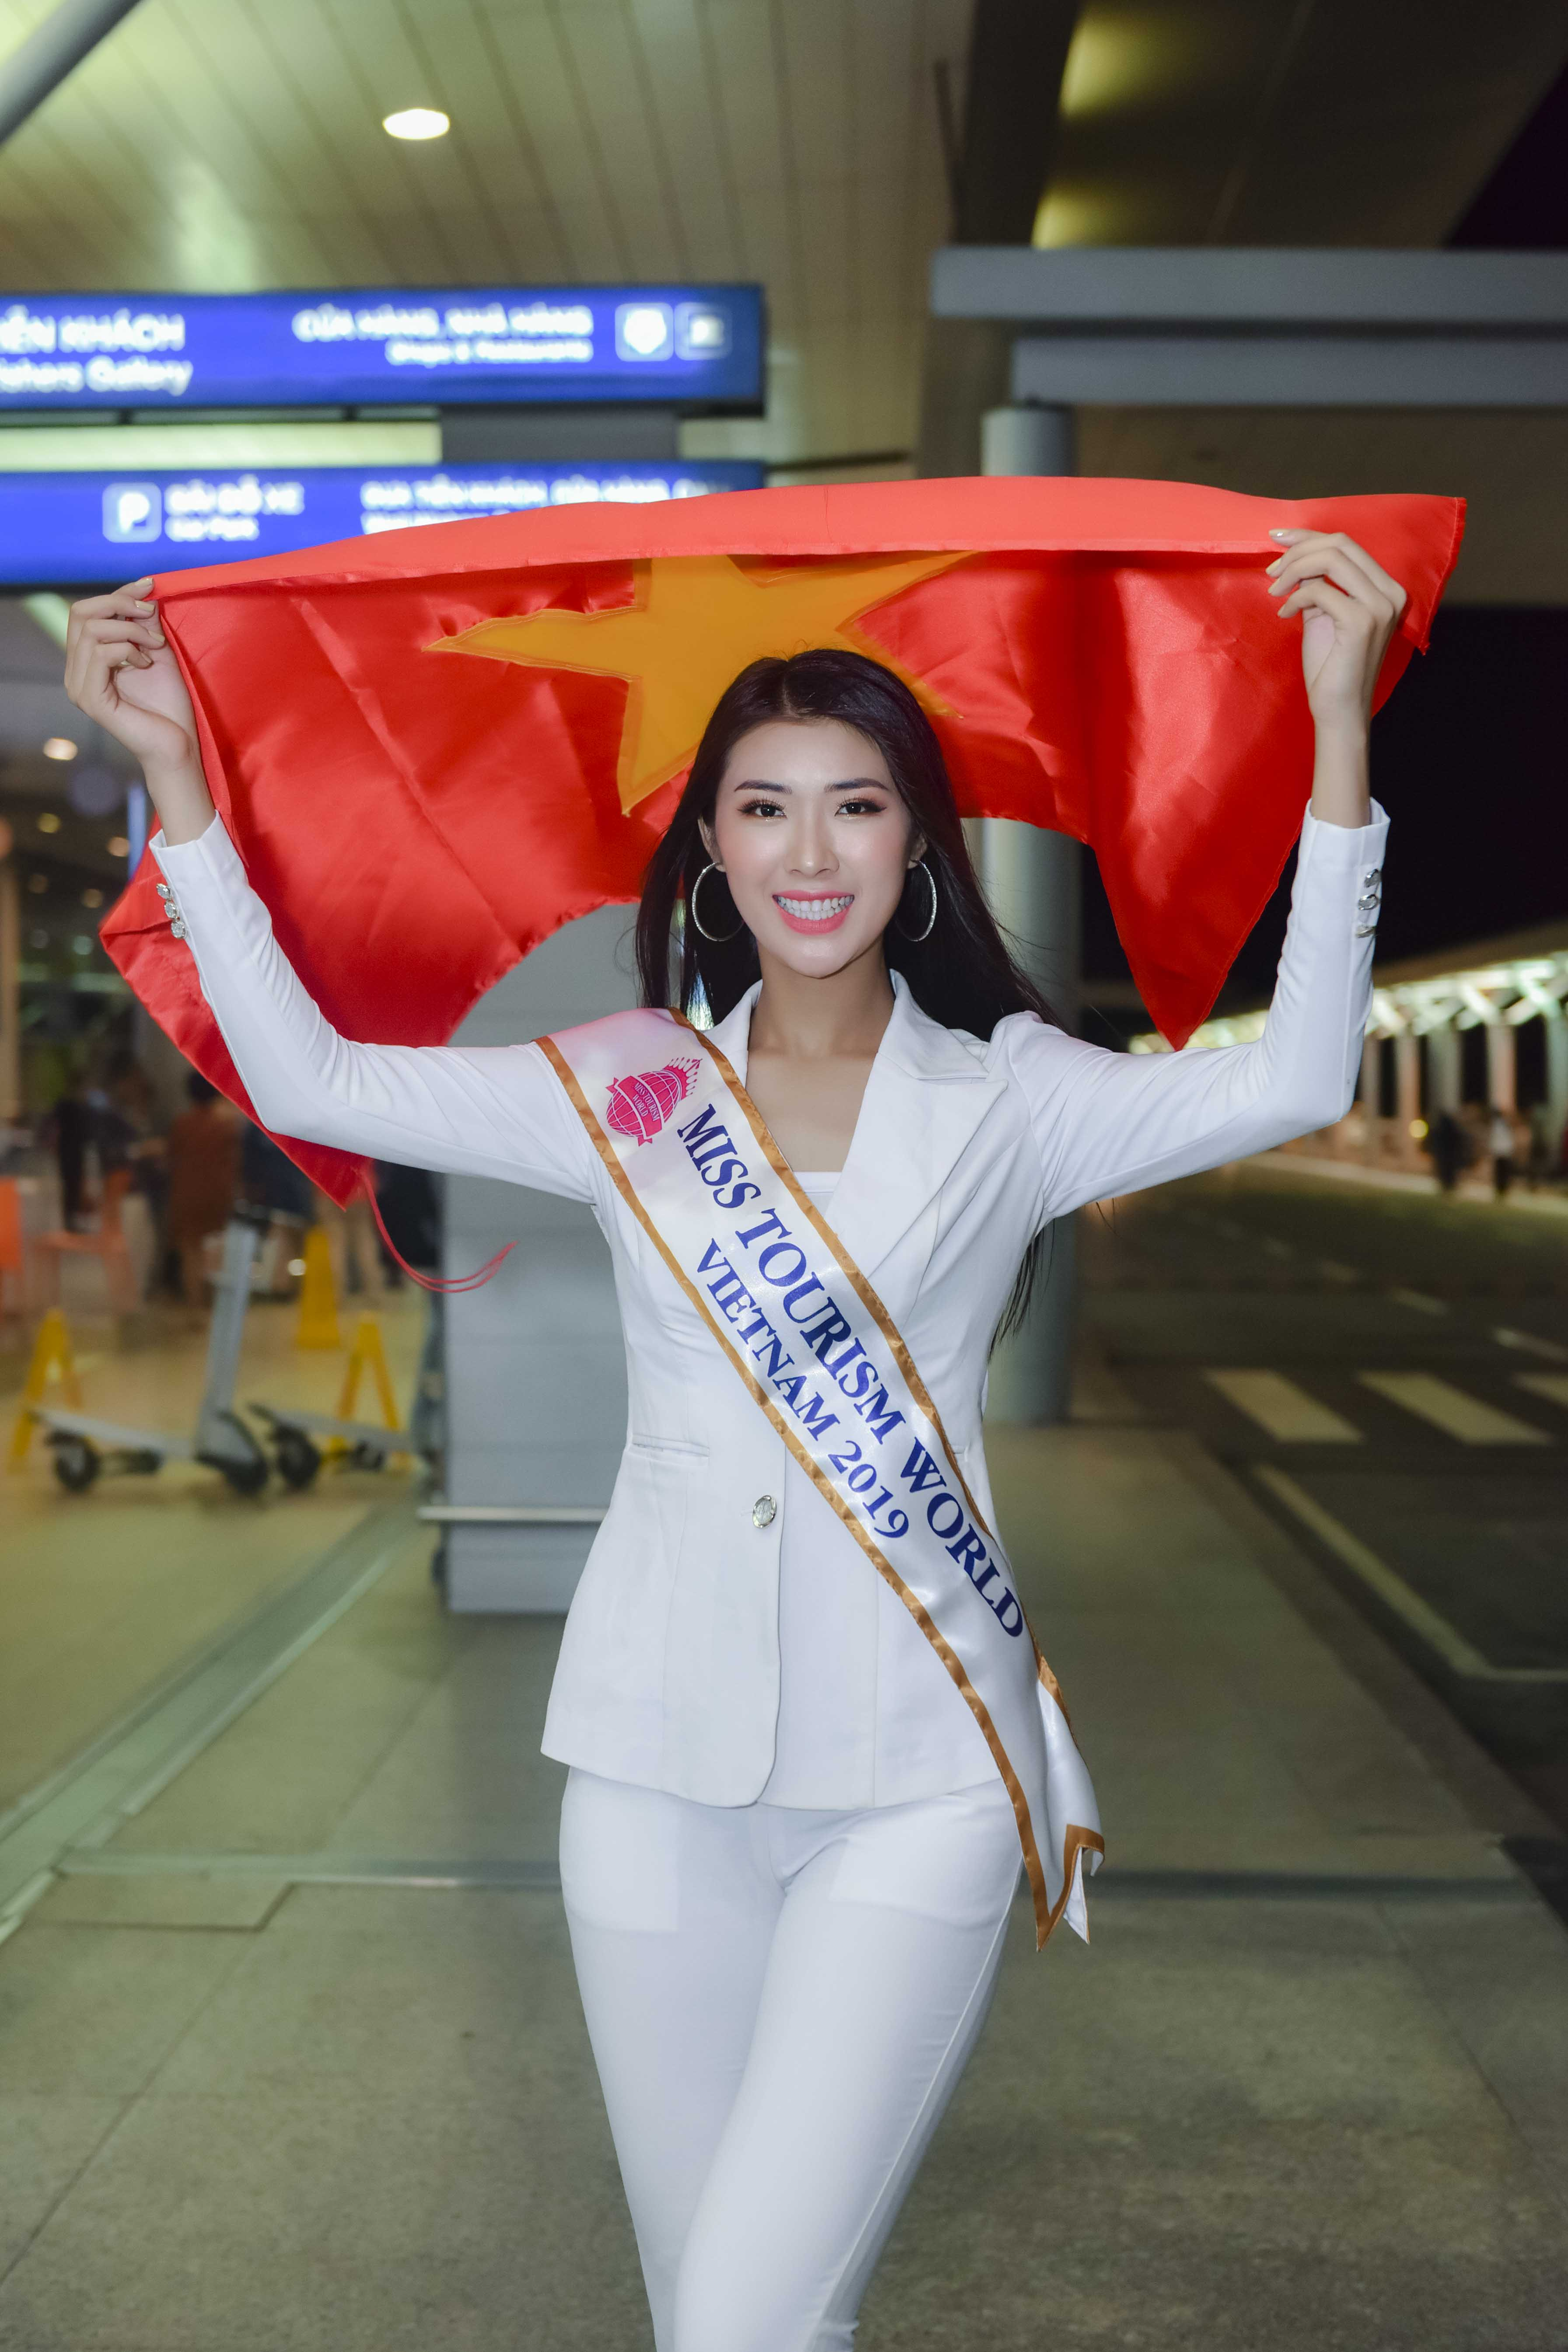 tuong vy dai dien viet nam di thi miss tourism world 2019 hinh anh 1